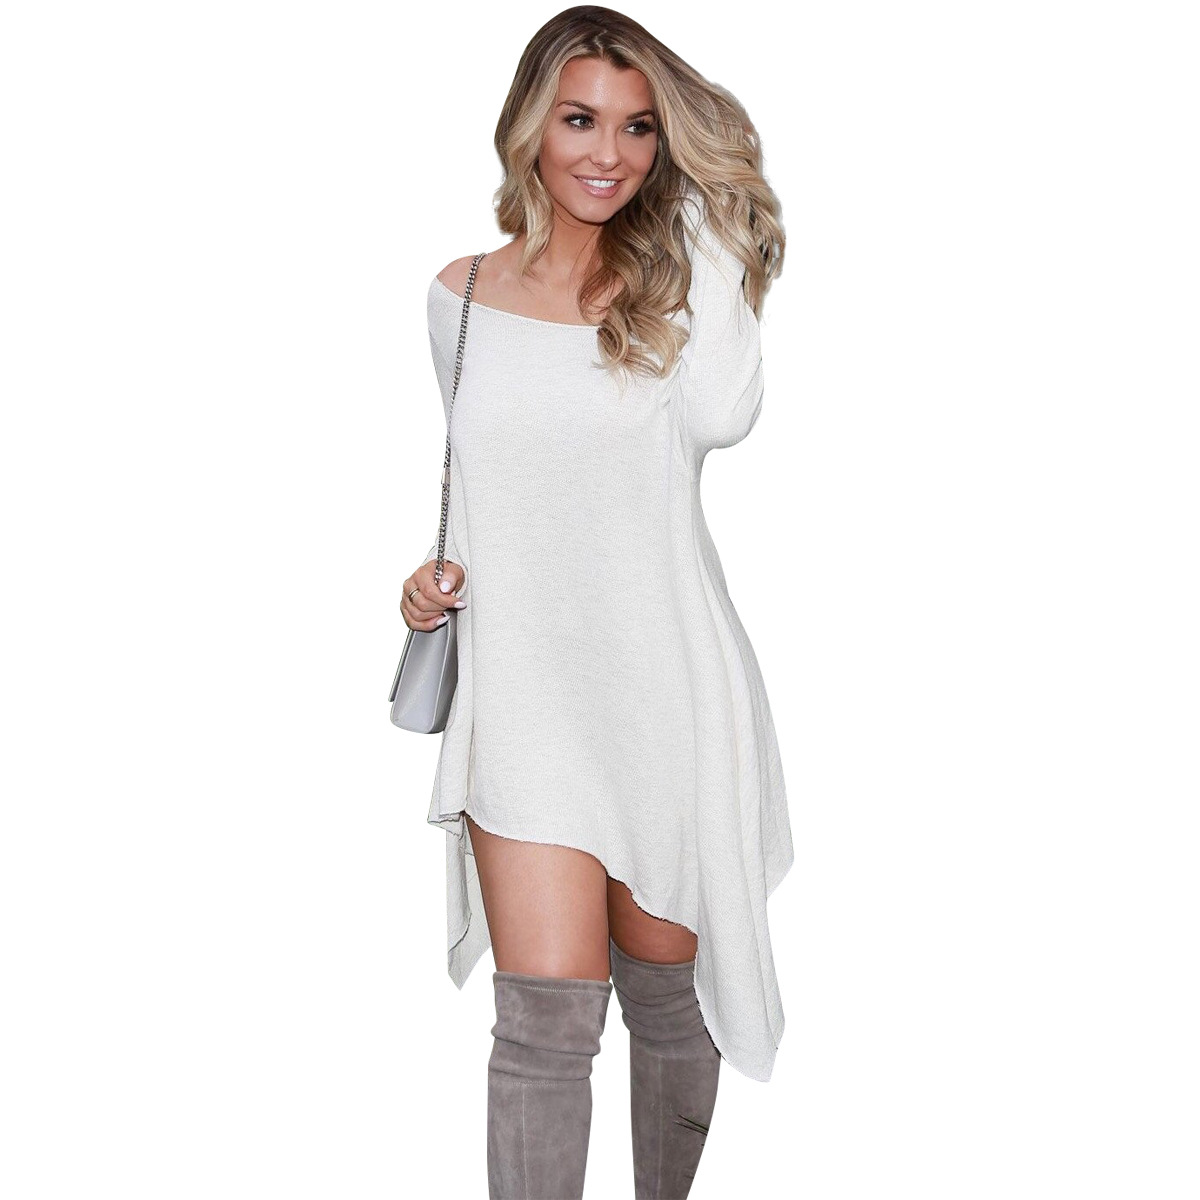 NEW Warm Knitted Dresses Sexy Women Mini Dress Off Shoulder Sexy Lace Bodycon Dresses Beach Party